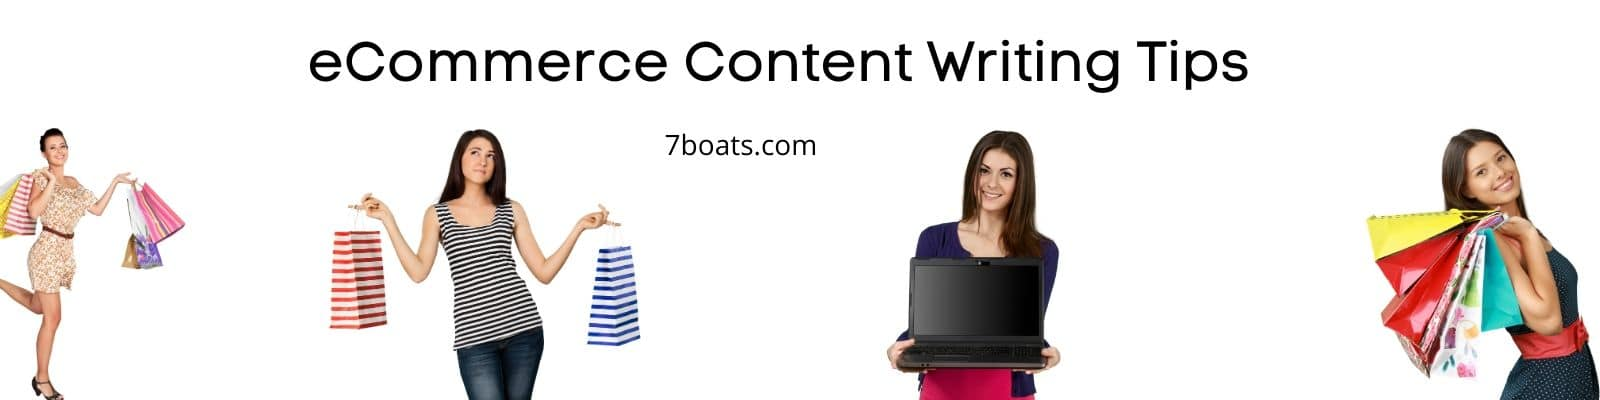 eCommerce Content Writing Tips